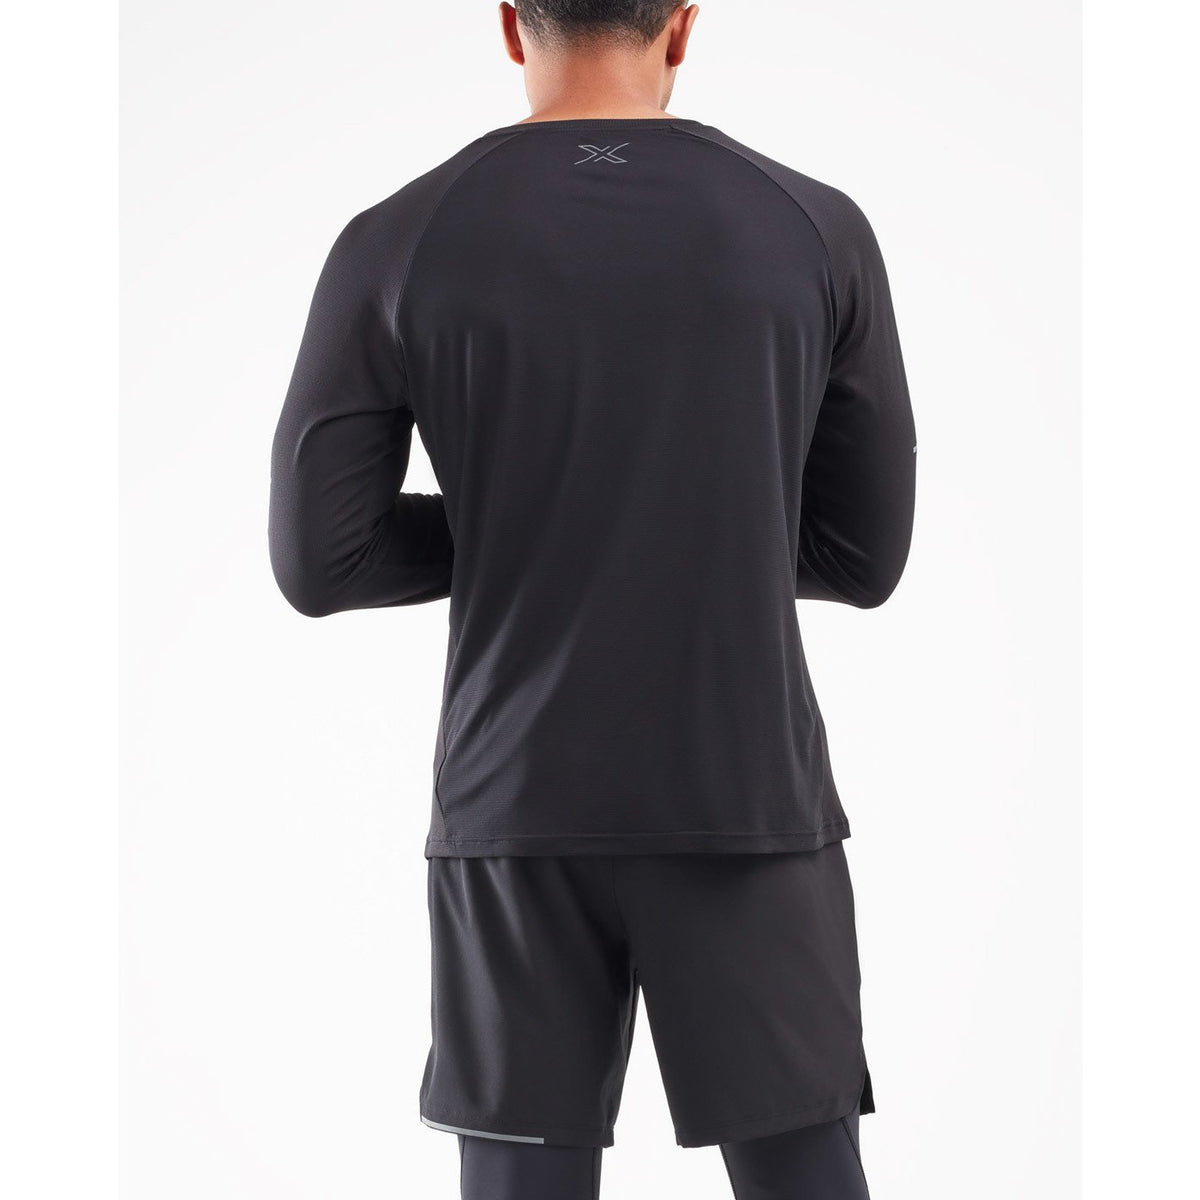 2XU Mens XVENT G2 Long Sleeve Top - Sole Motive